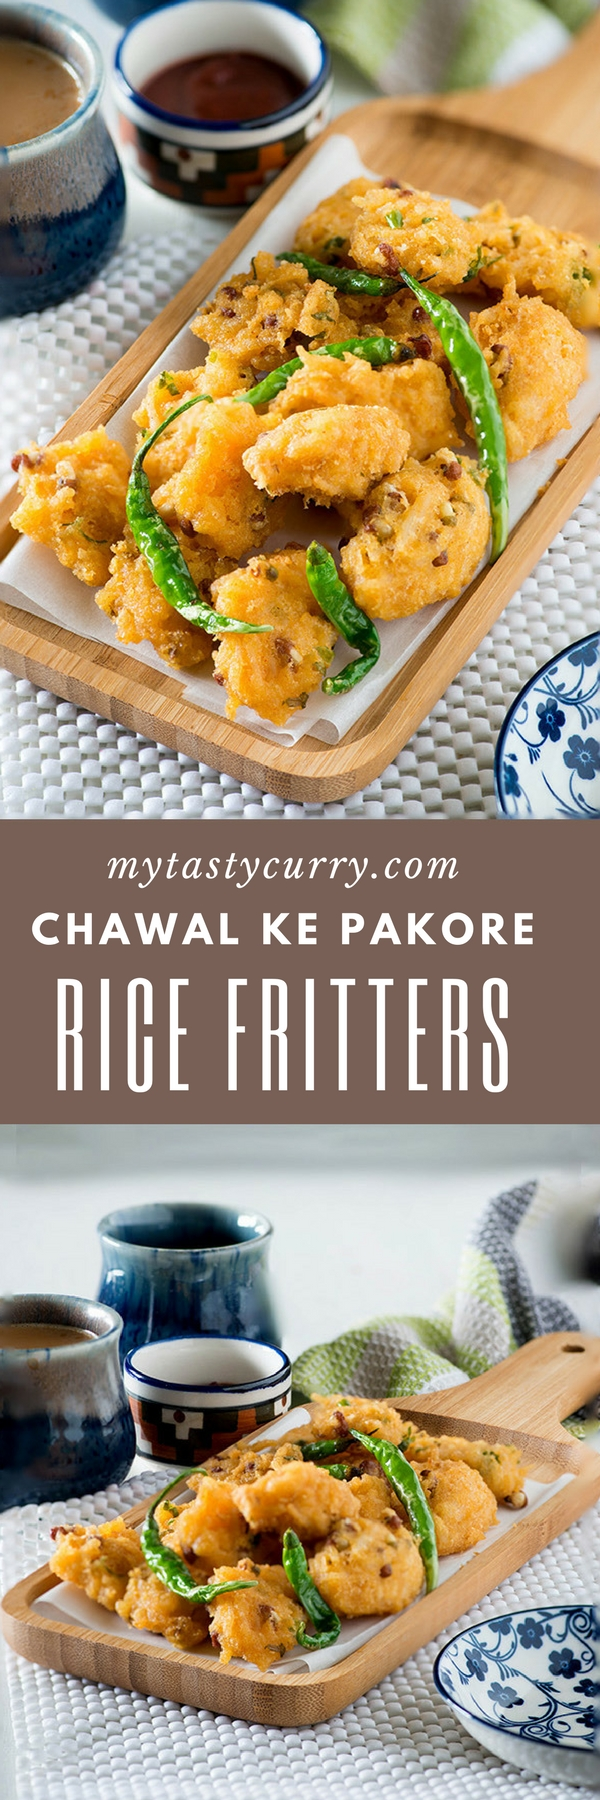 rice pakora recipe or chawal ke pakore with step by step video – Deep fried fritters or pakoras are made from leftover cooked rice and gram flour.